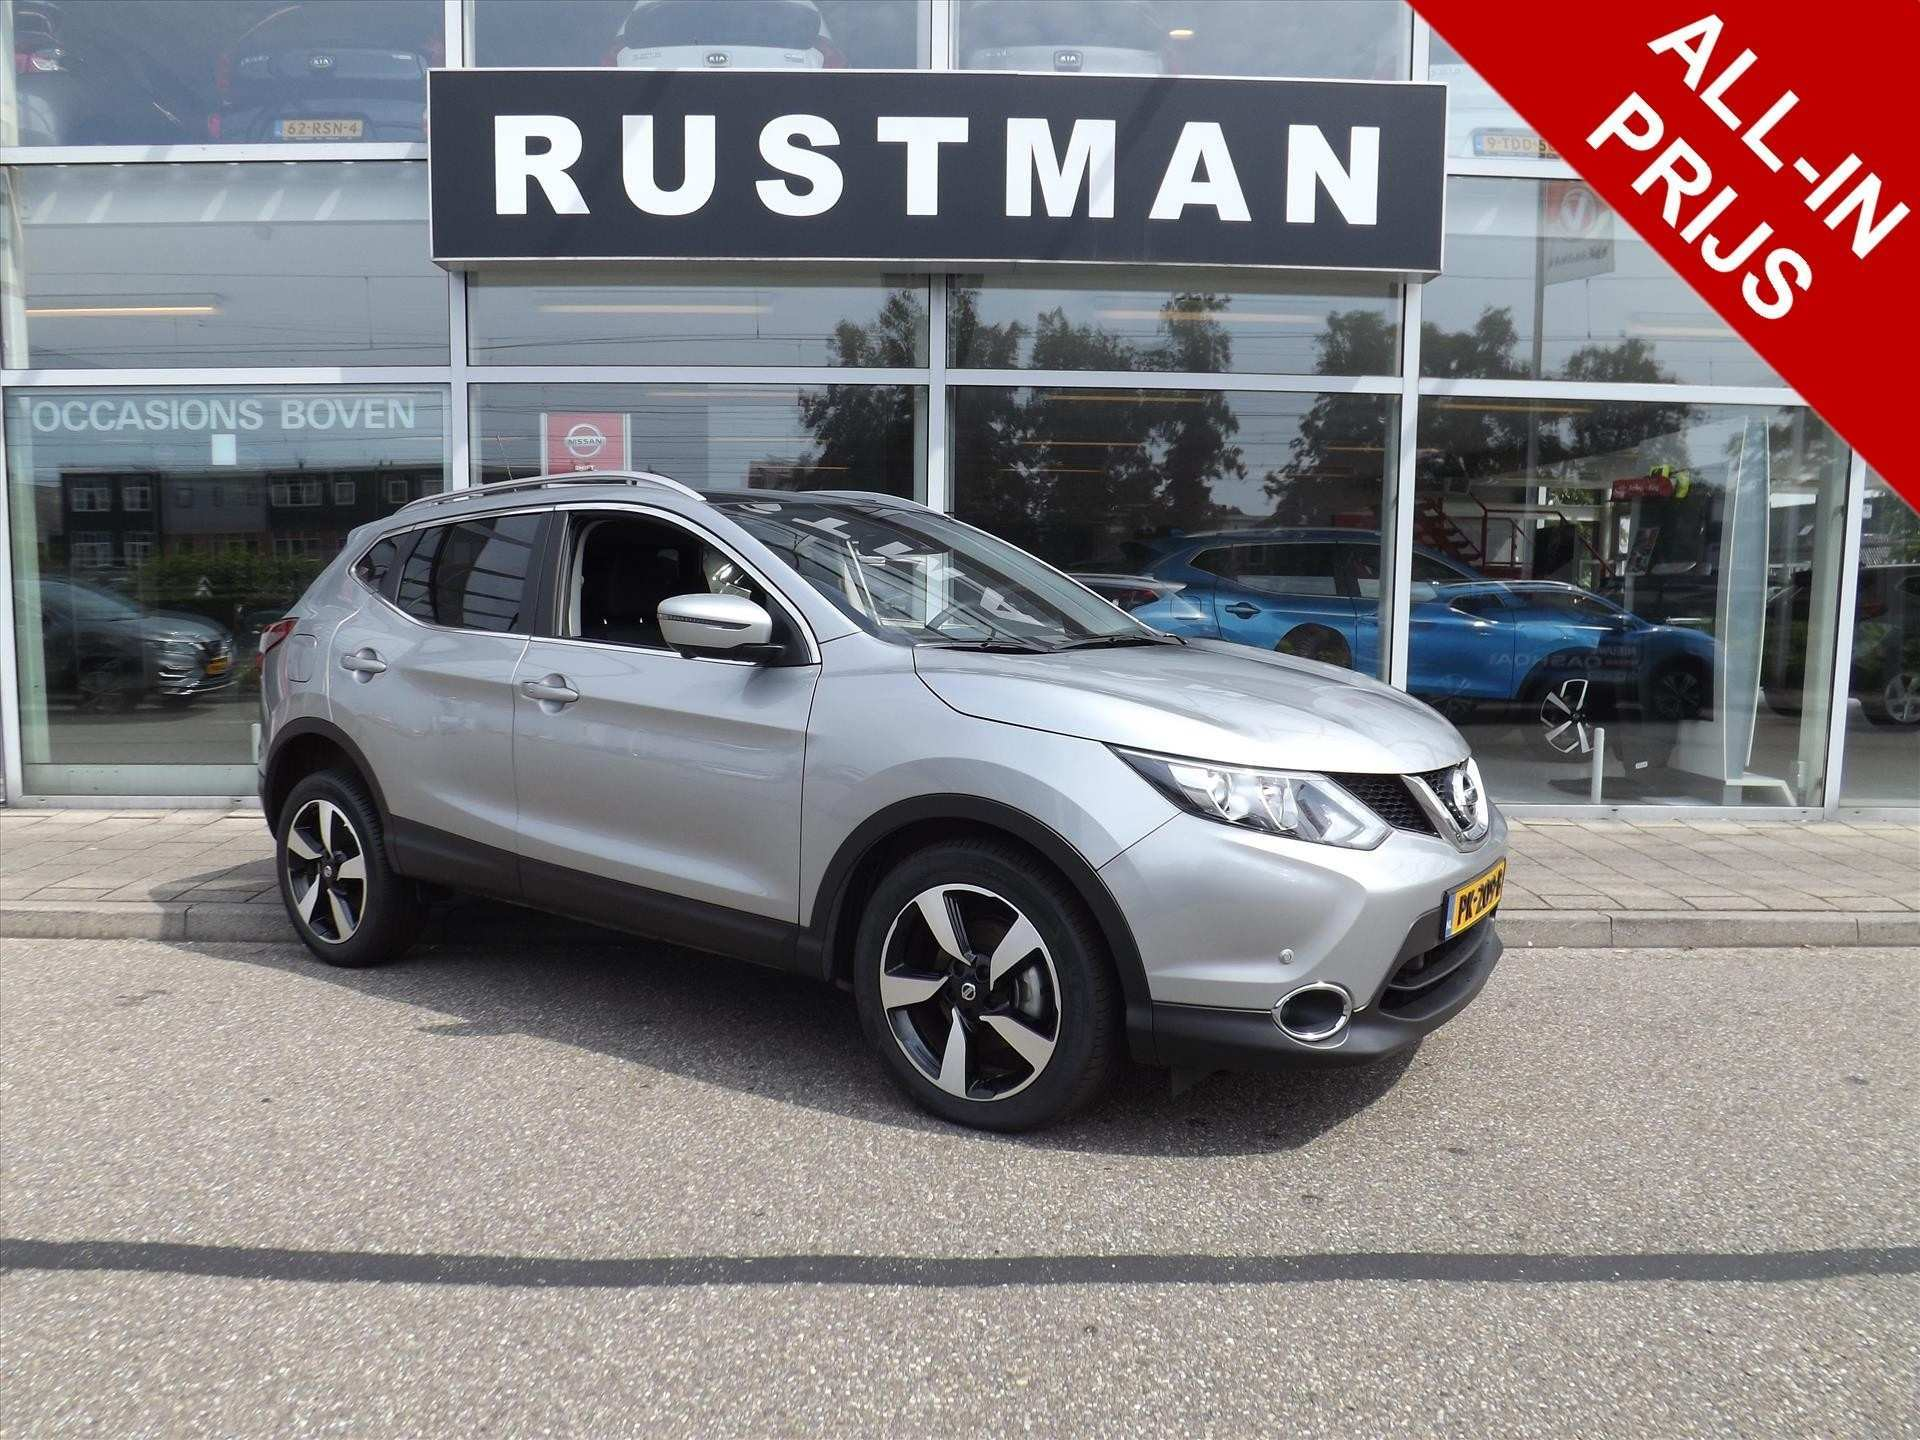 26 All New Nissan Qashqai 2020 Release Date Release Date by Nissan Qashqai 2020 Release Date